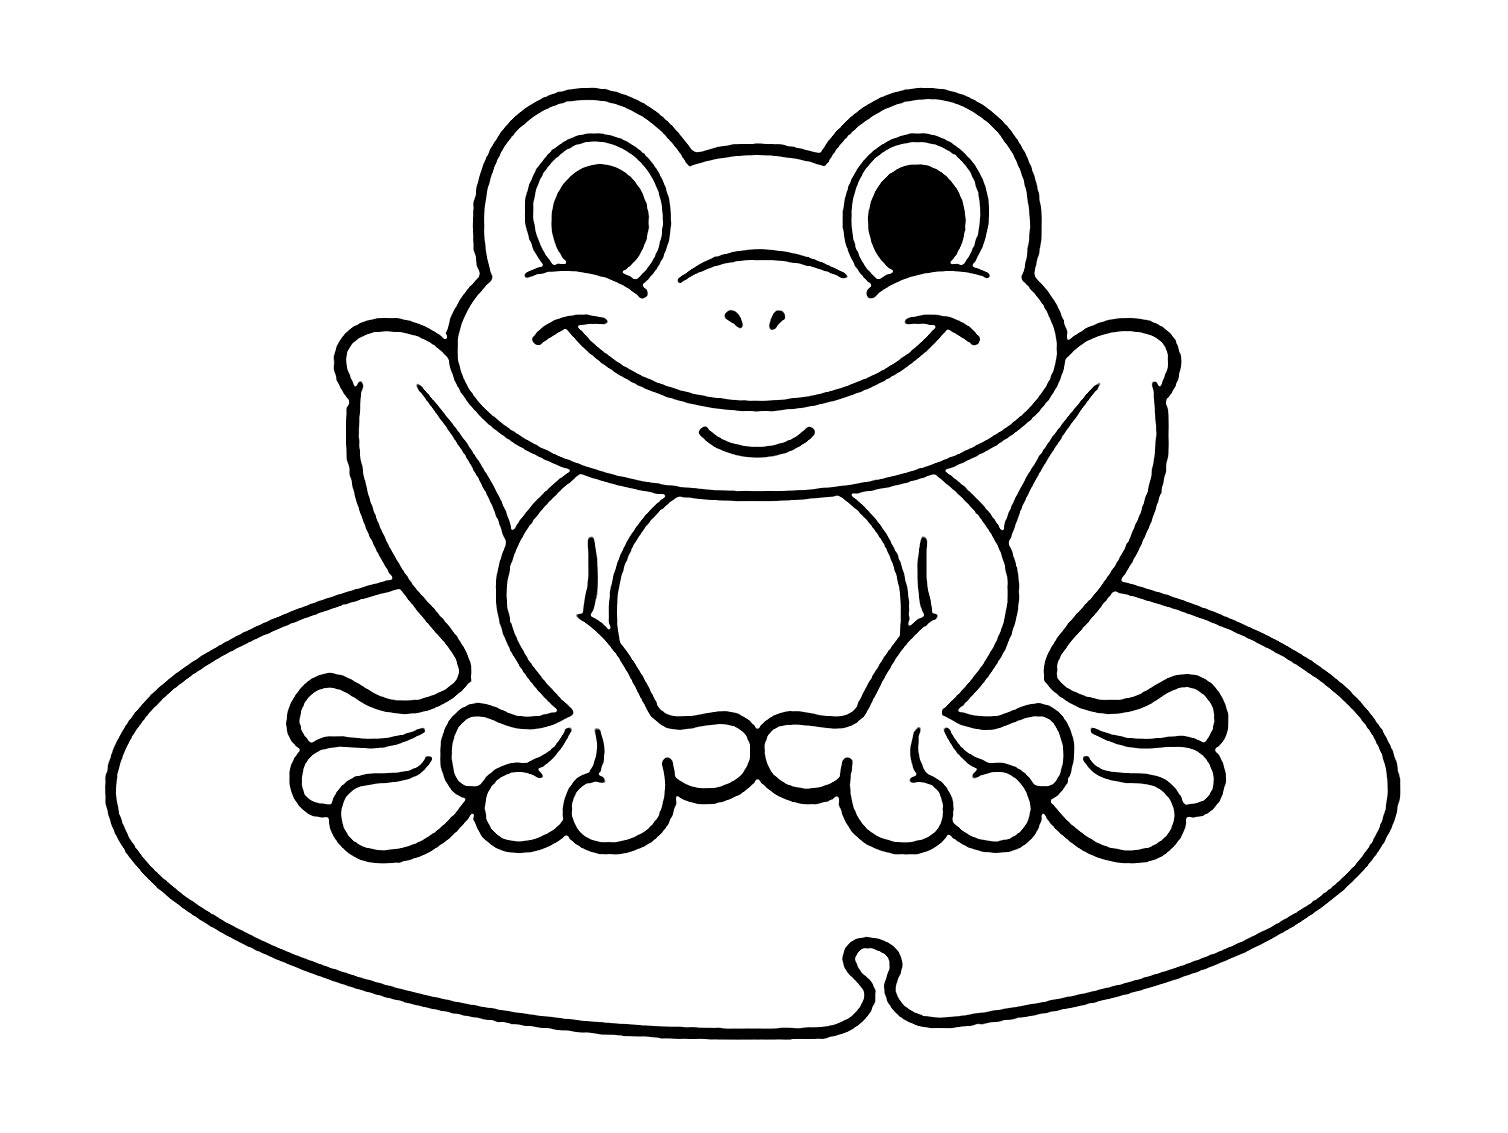 frogs to color for free frogs coloring pages to download and print for free frogs to free color for